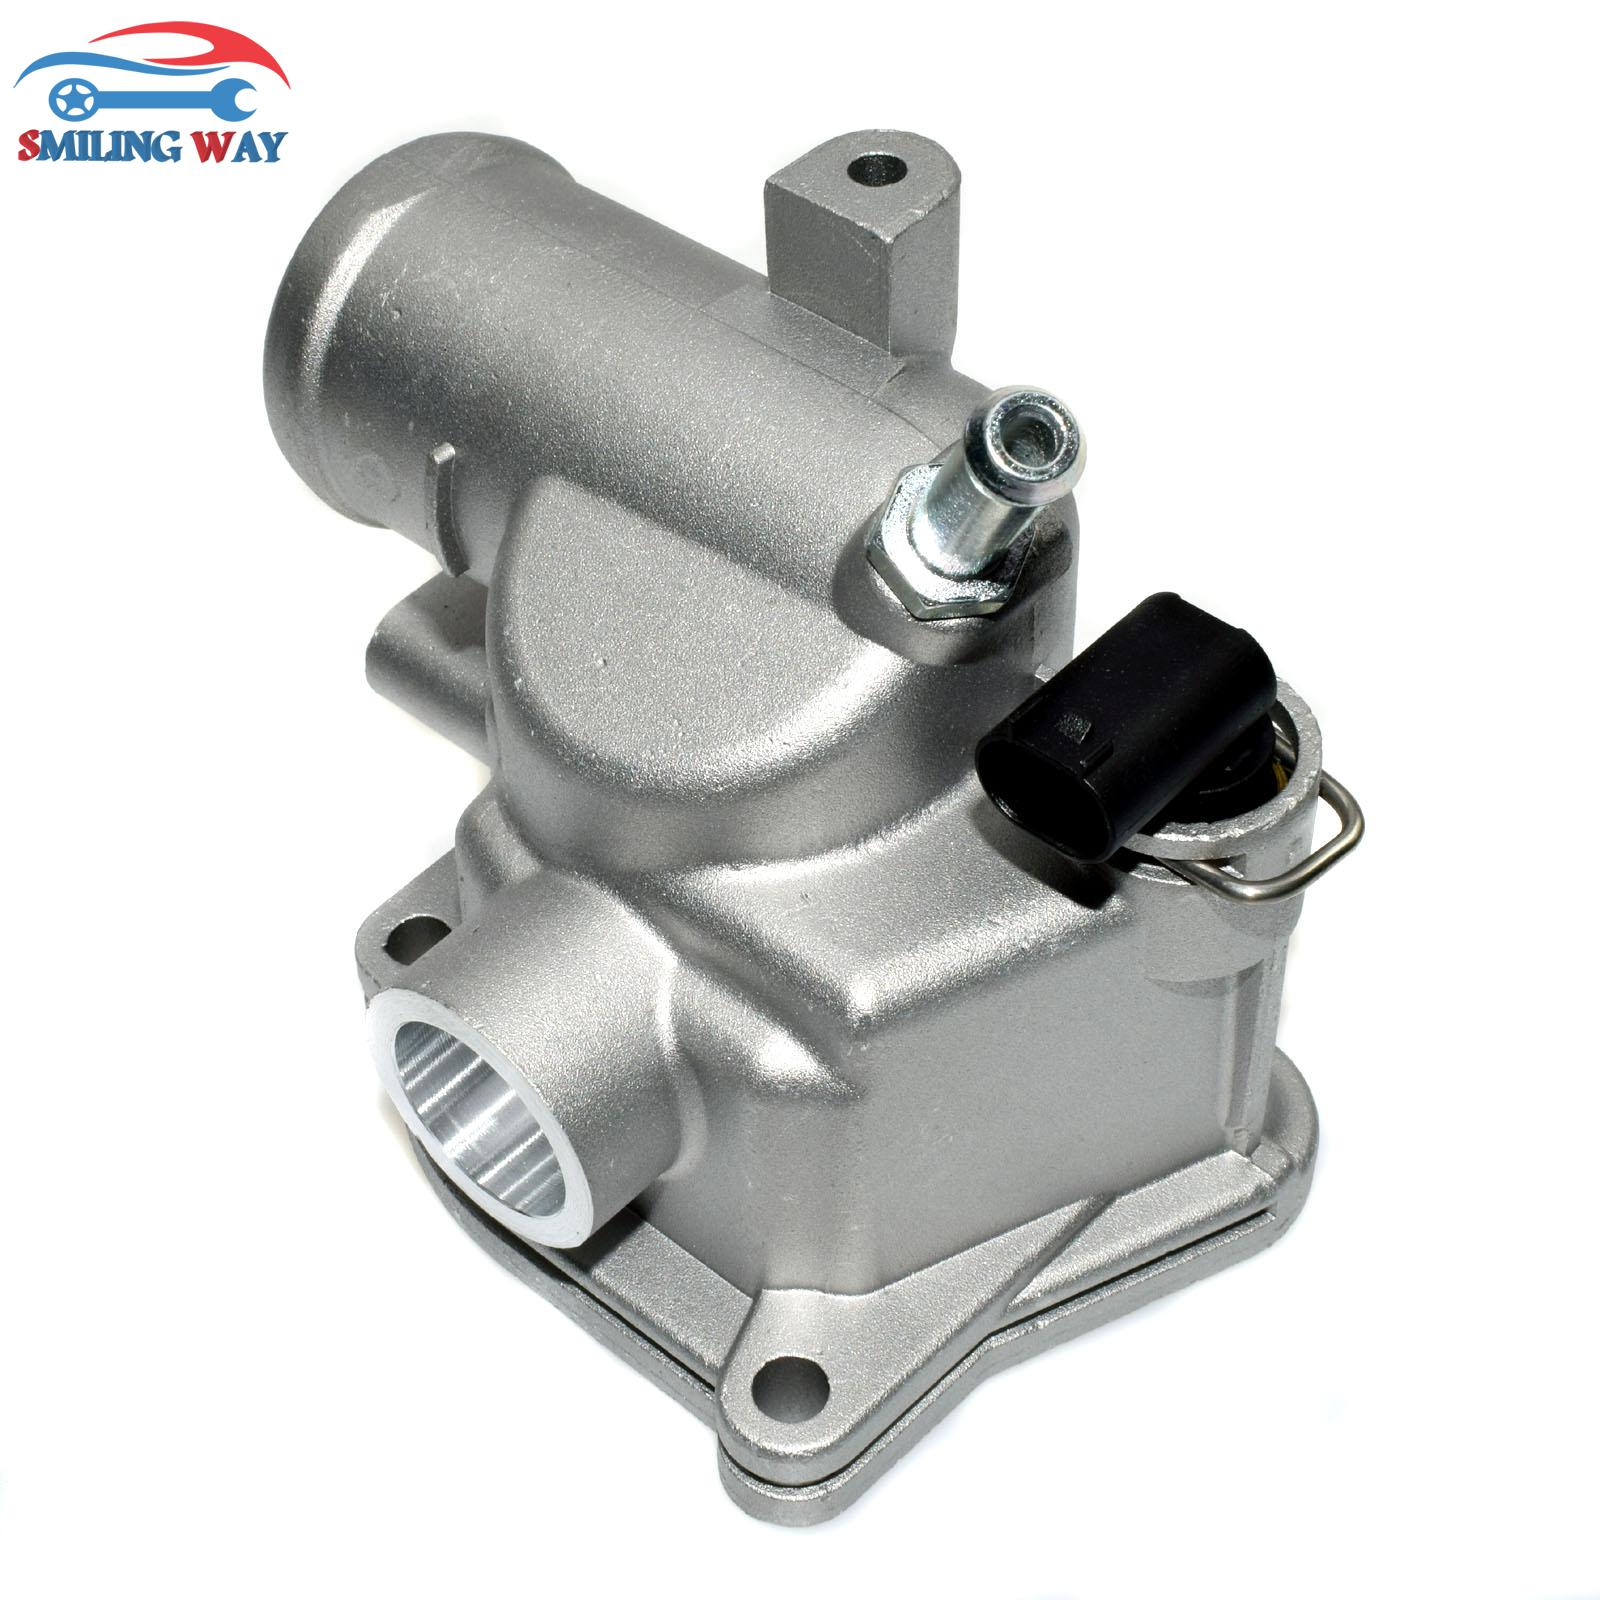 hight resolution of smiling way engine coolant thermostat for mercedes benz w202 s202 c class e class c200 e200 c36 amg oe 6112000015 6112030075